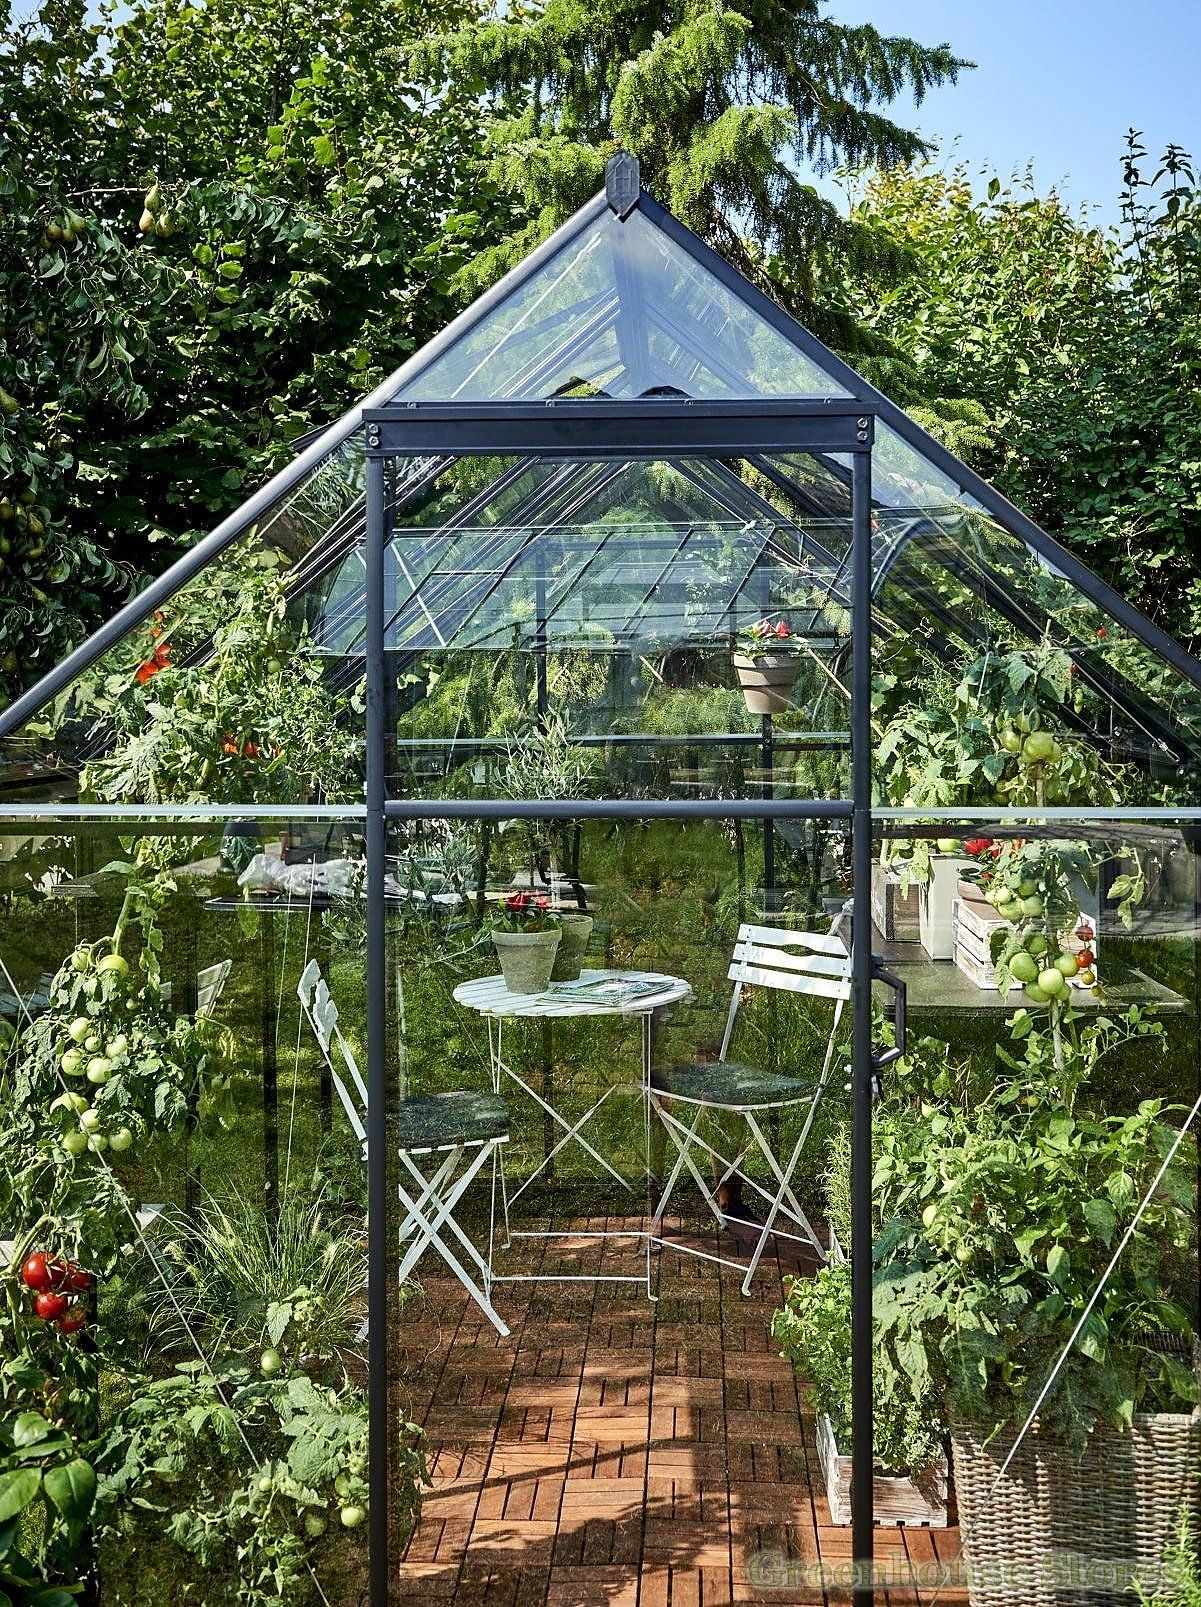 6x6 Halls Qube Greenhouse Greenhouse Stores Backyard Greenhouse Greenhouse Buy Greenhouse Backyard greenhouse for sale